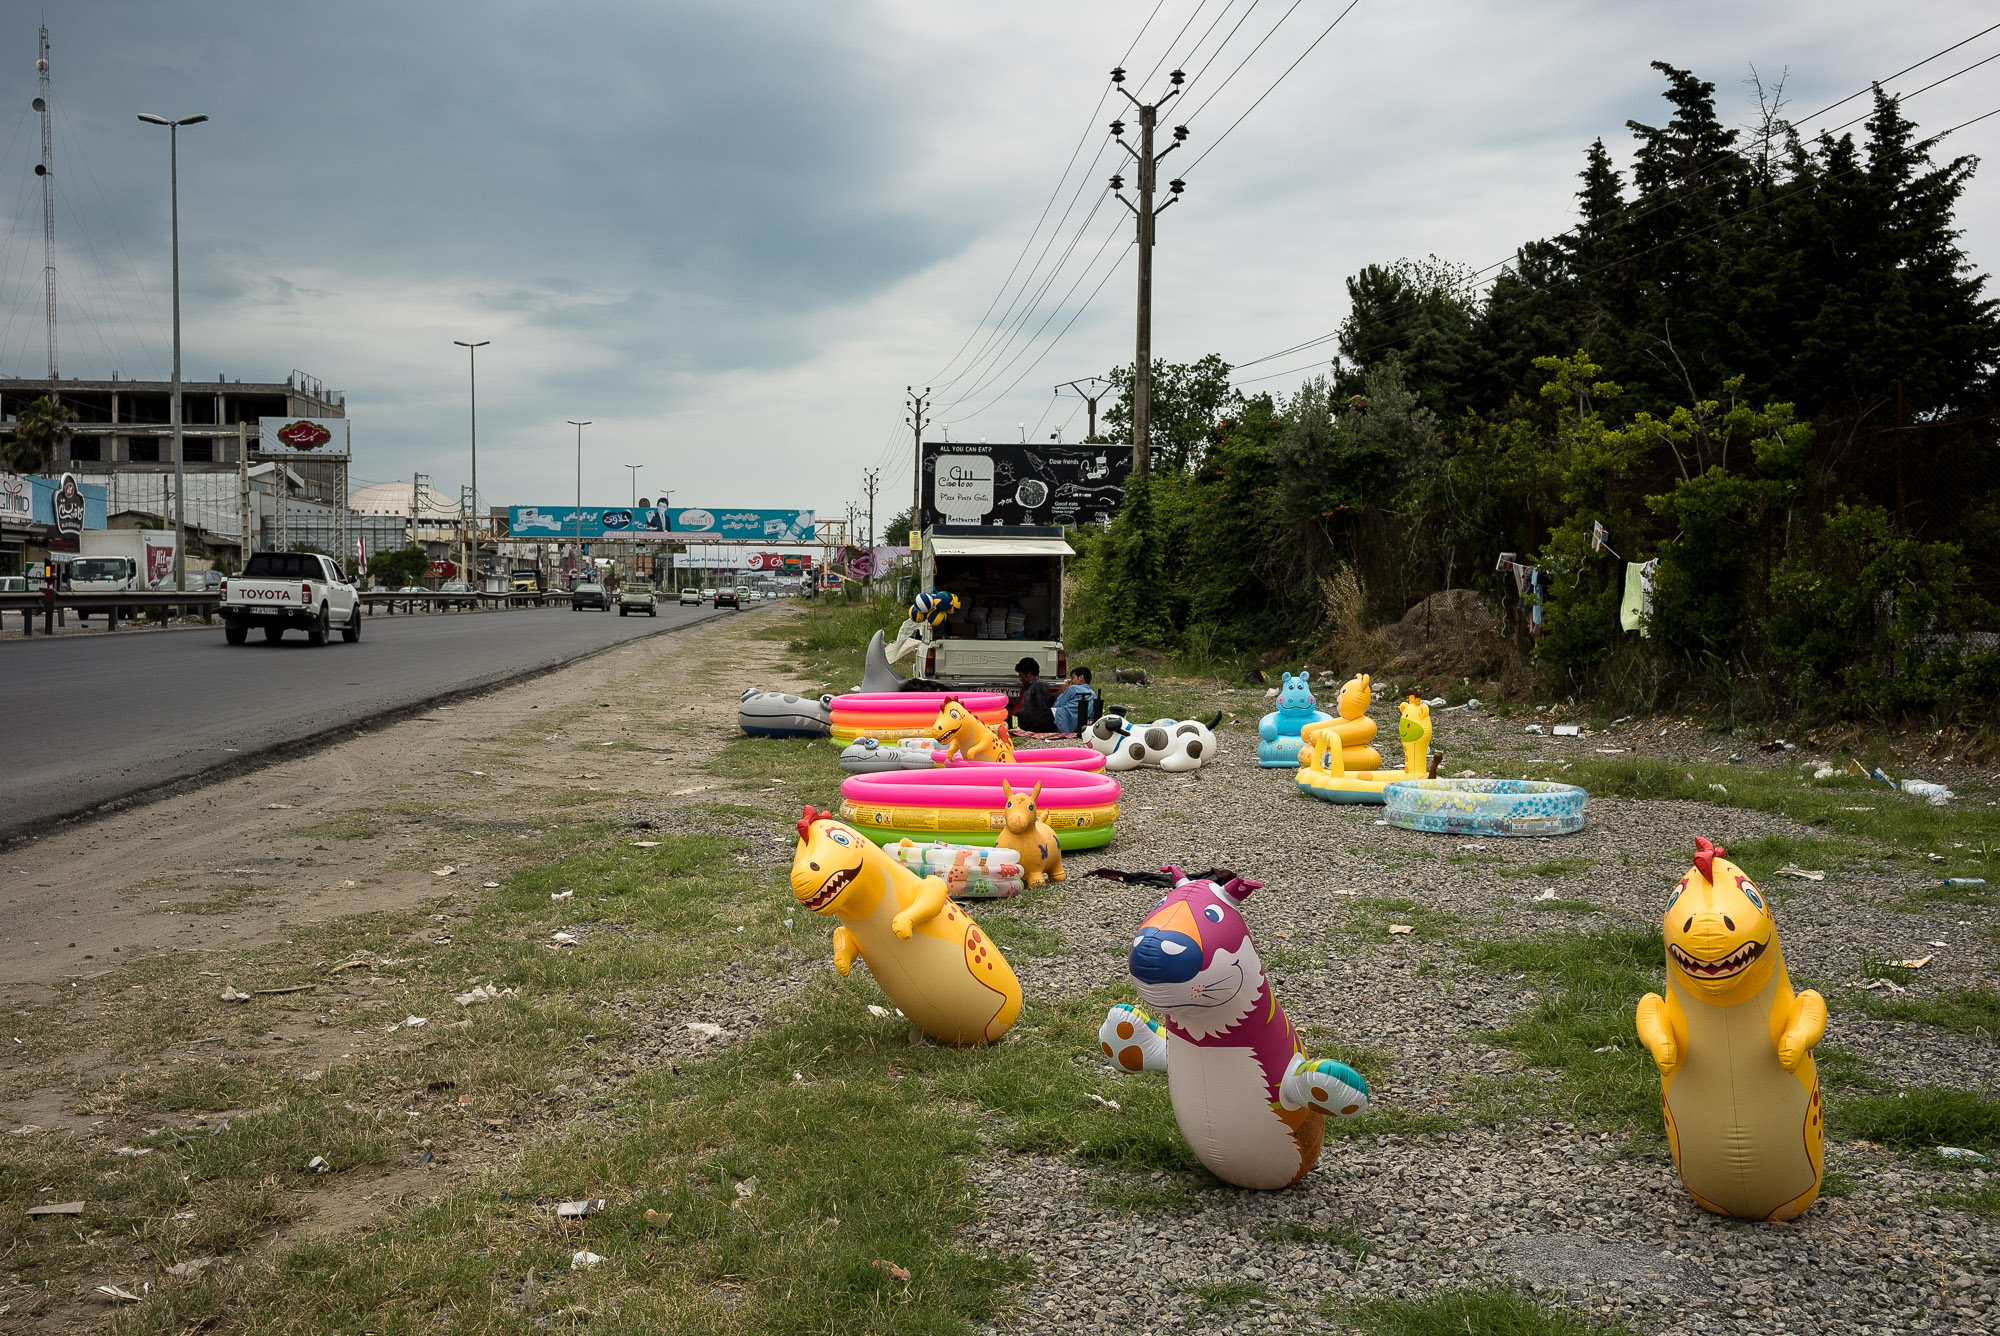 inflatable toys near the road